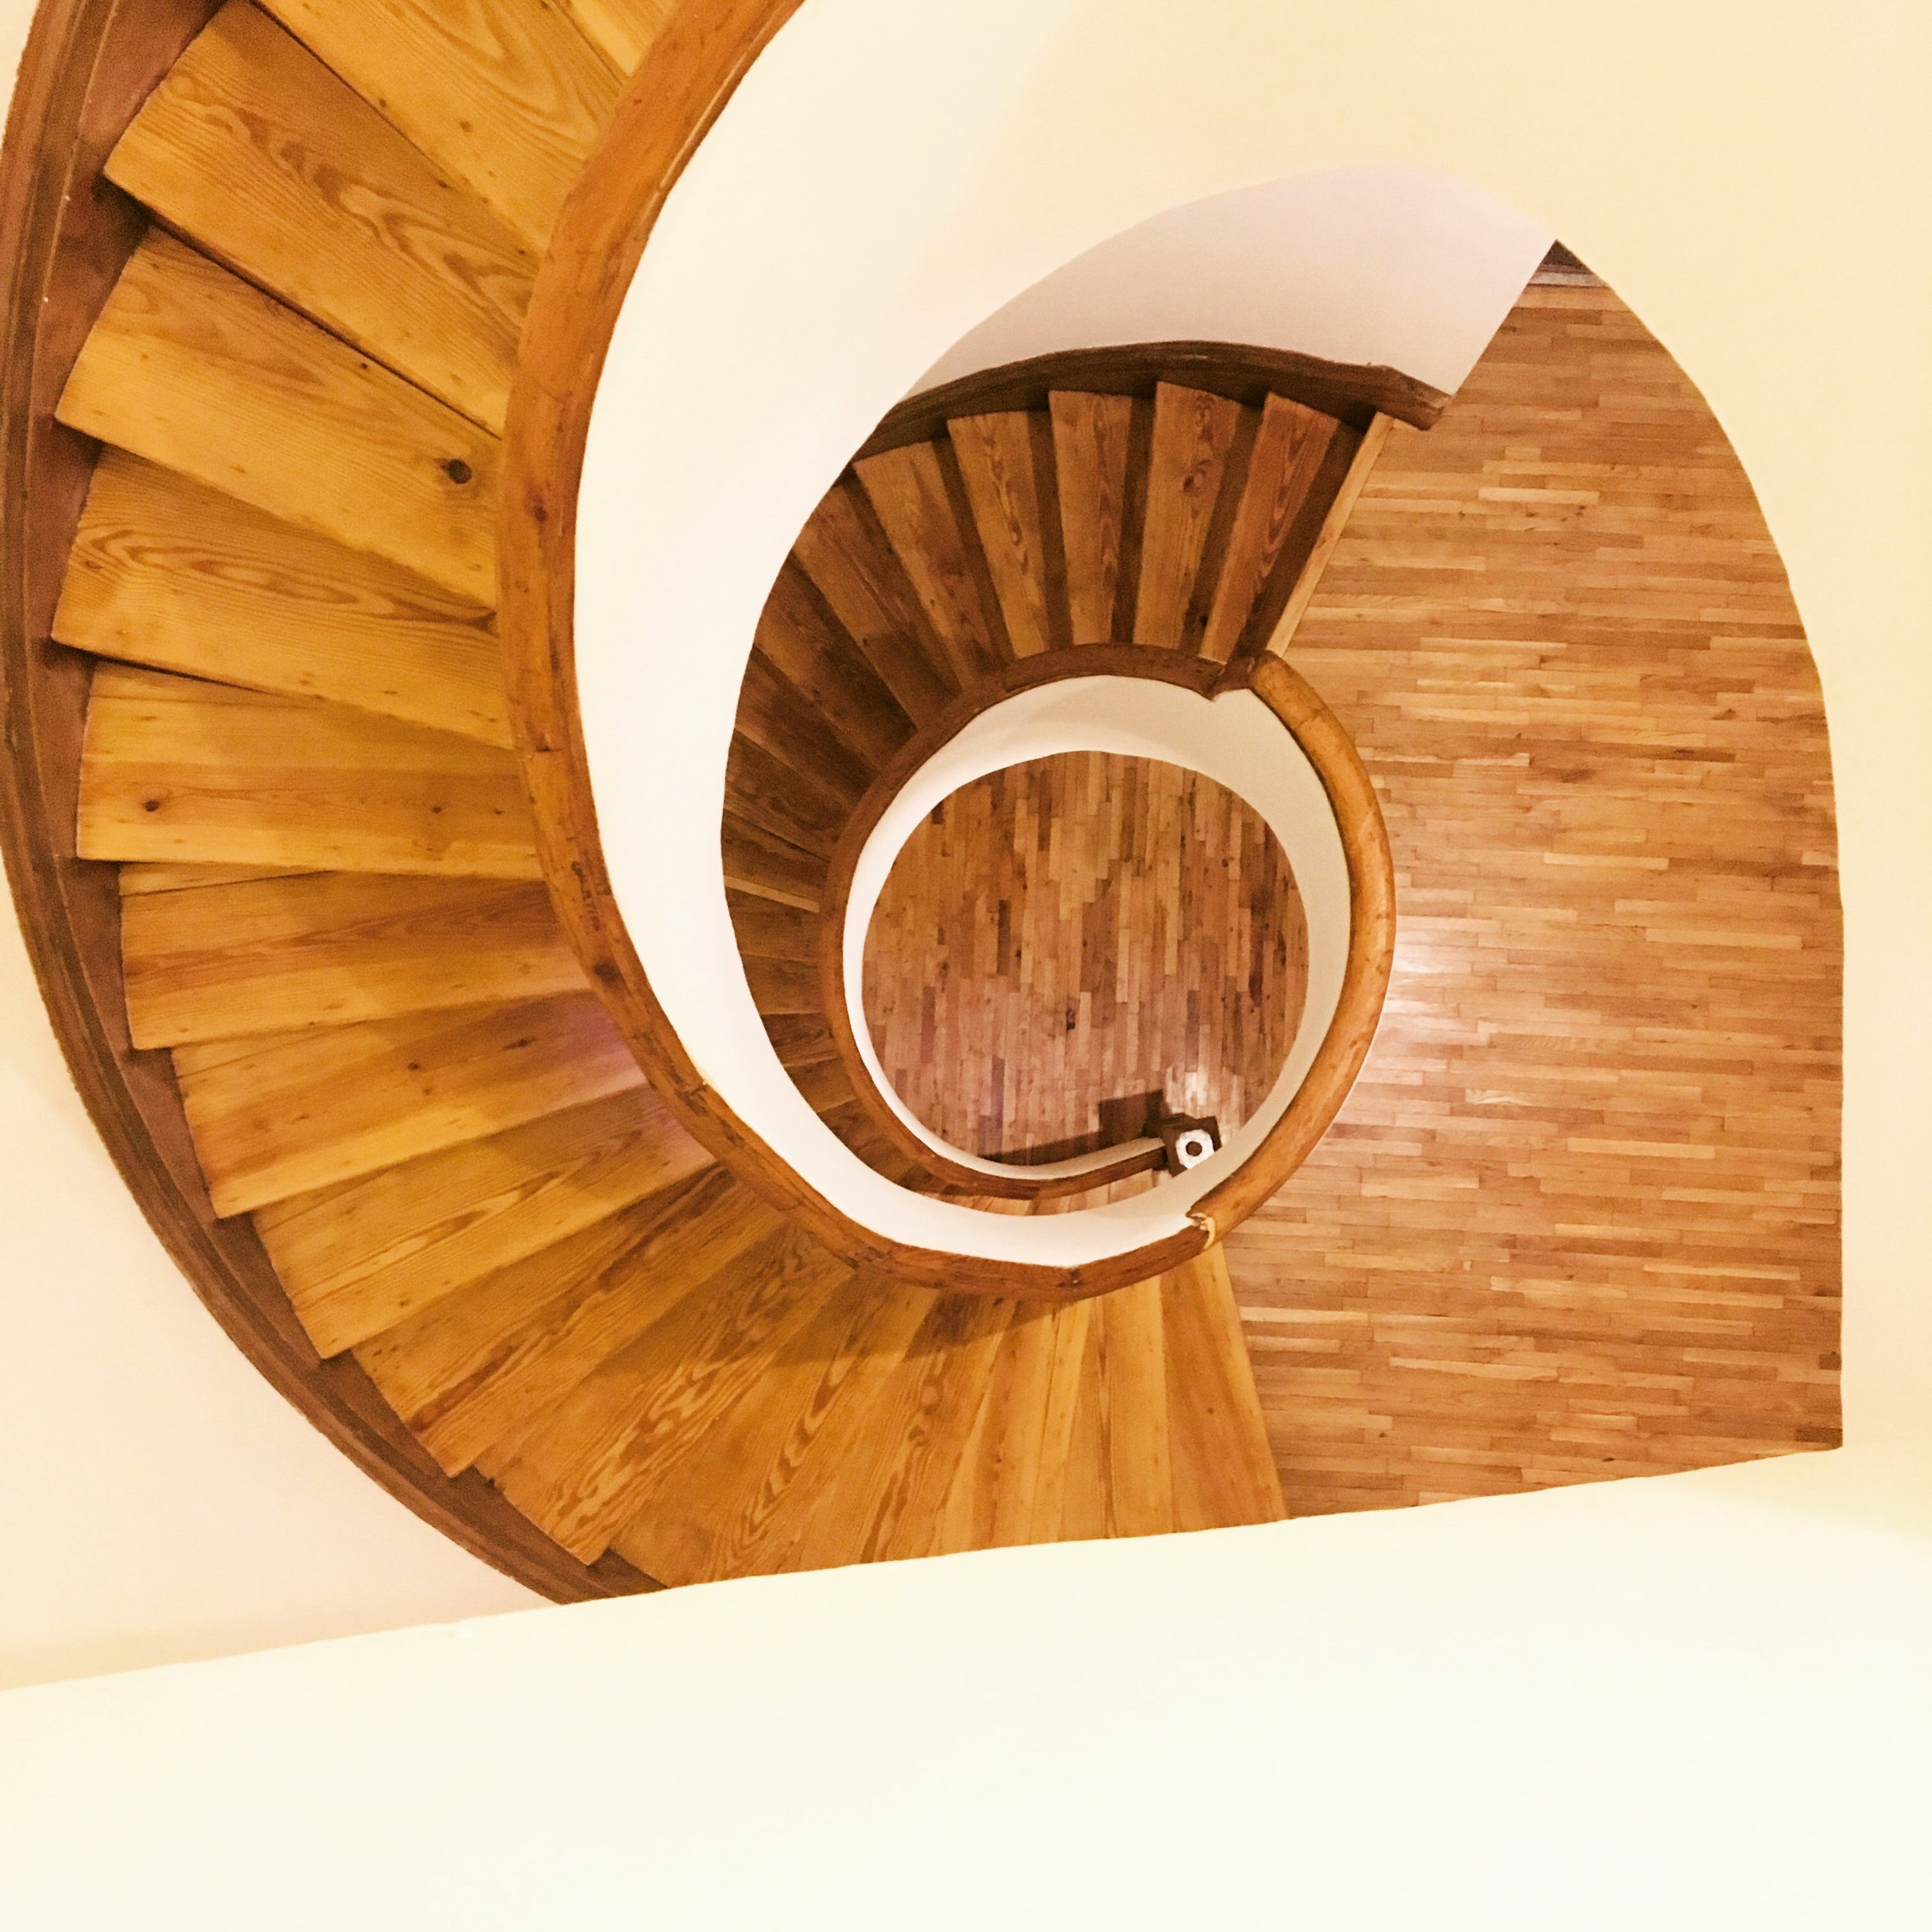 Original 1845 All Wood Spiral Staircase